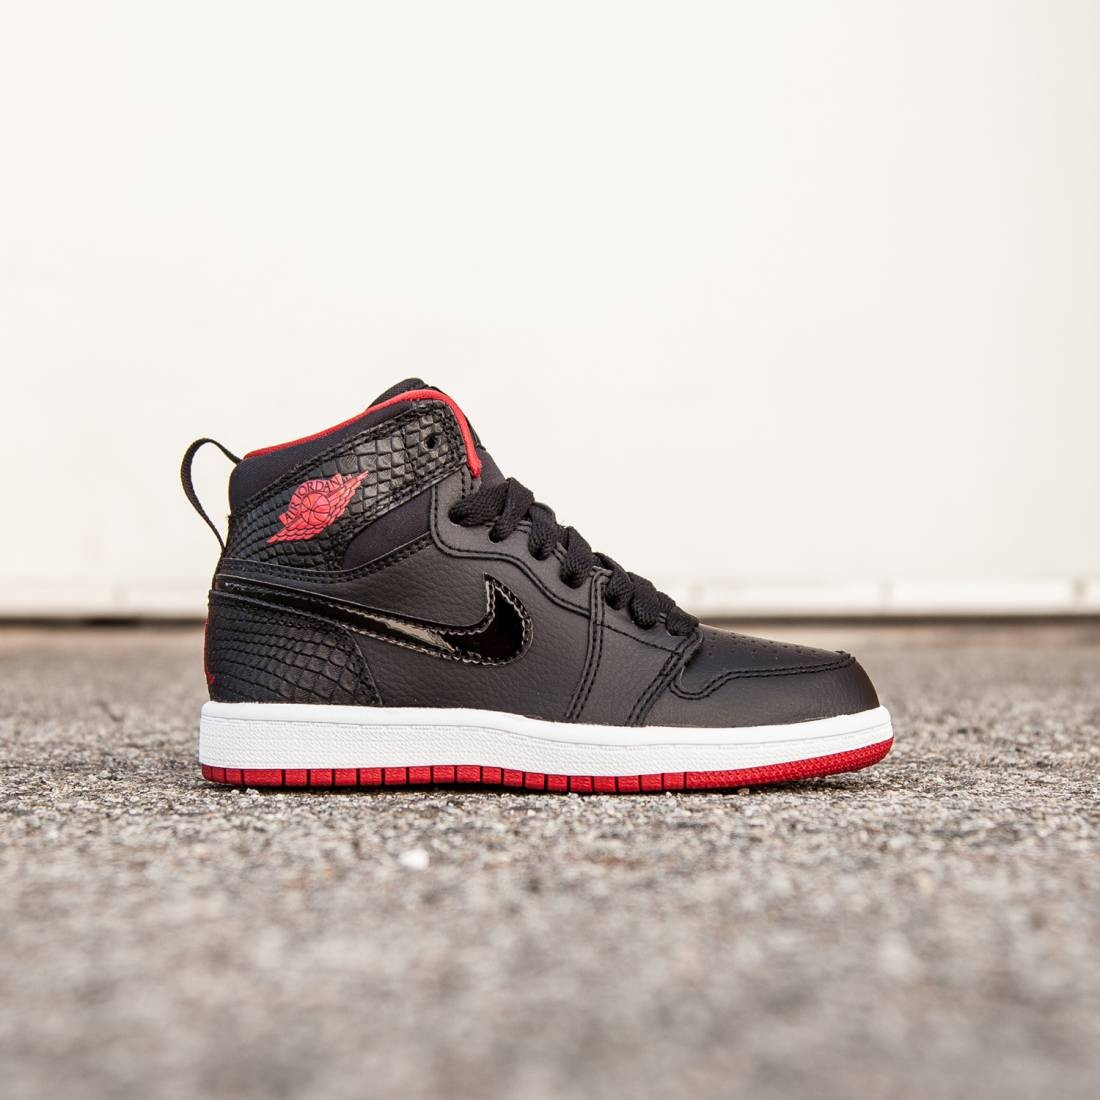 new style 5a722 1161a Jordan Little Kids Jordan 1 Retro High (black white  gym red)